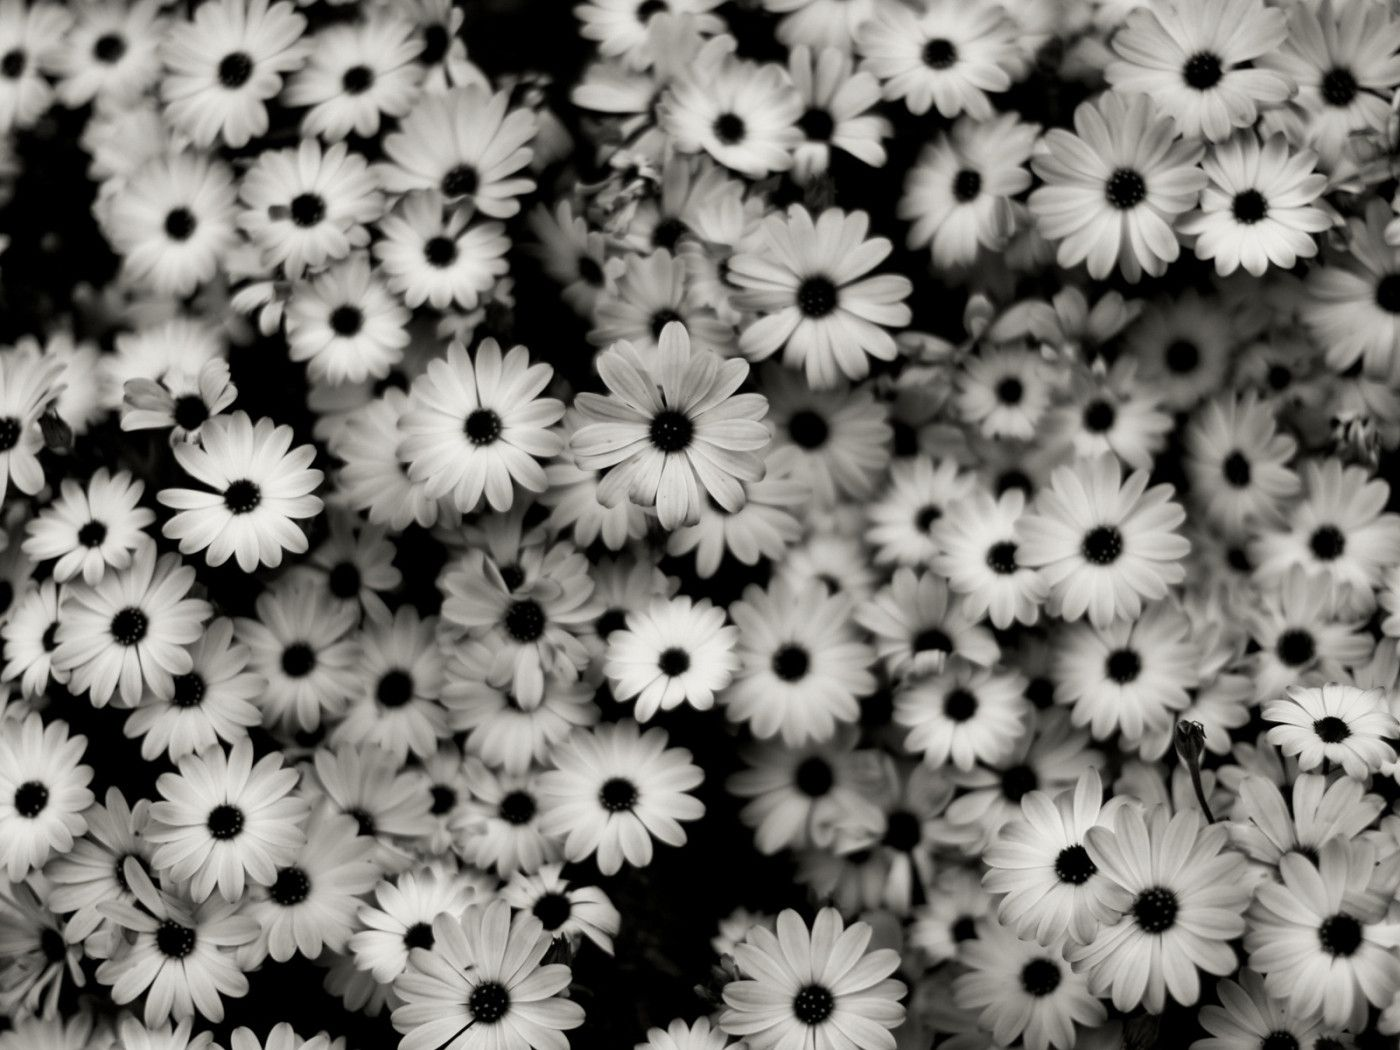 pictures of black and white flowers   Google Search   PICTURES OF     pictures of black and white flowers   Google Search